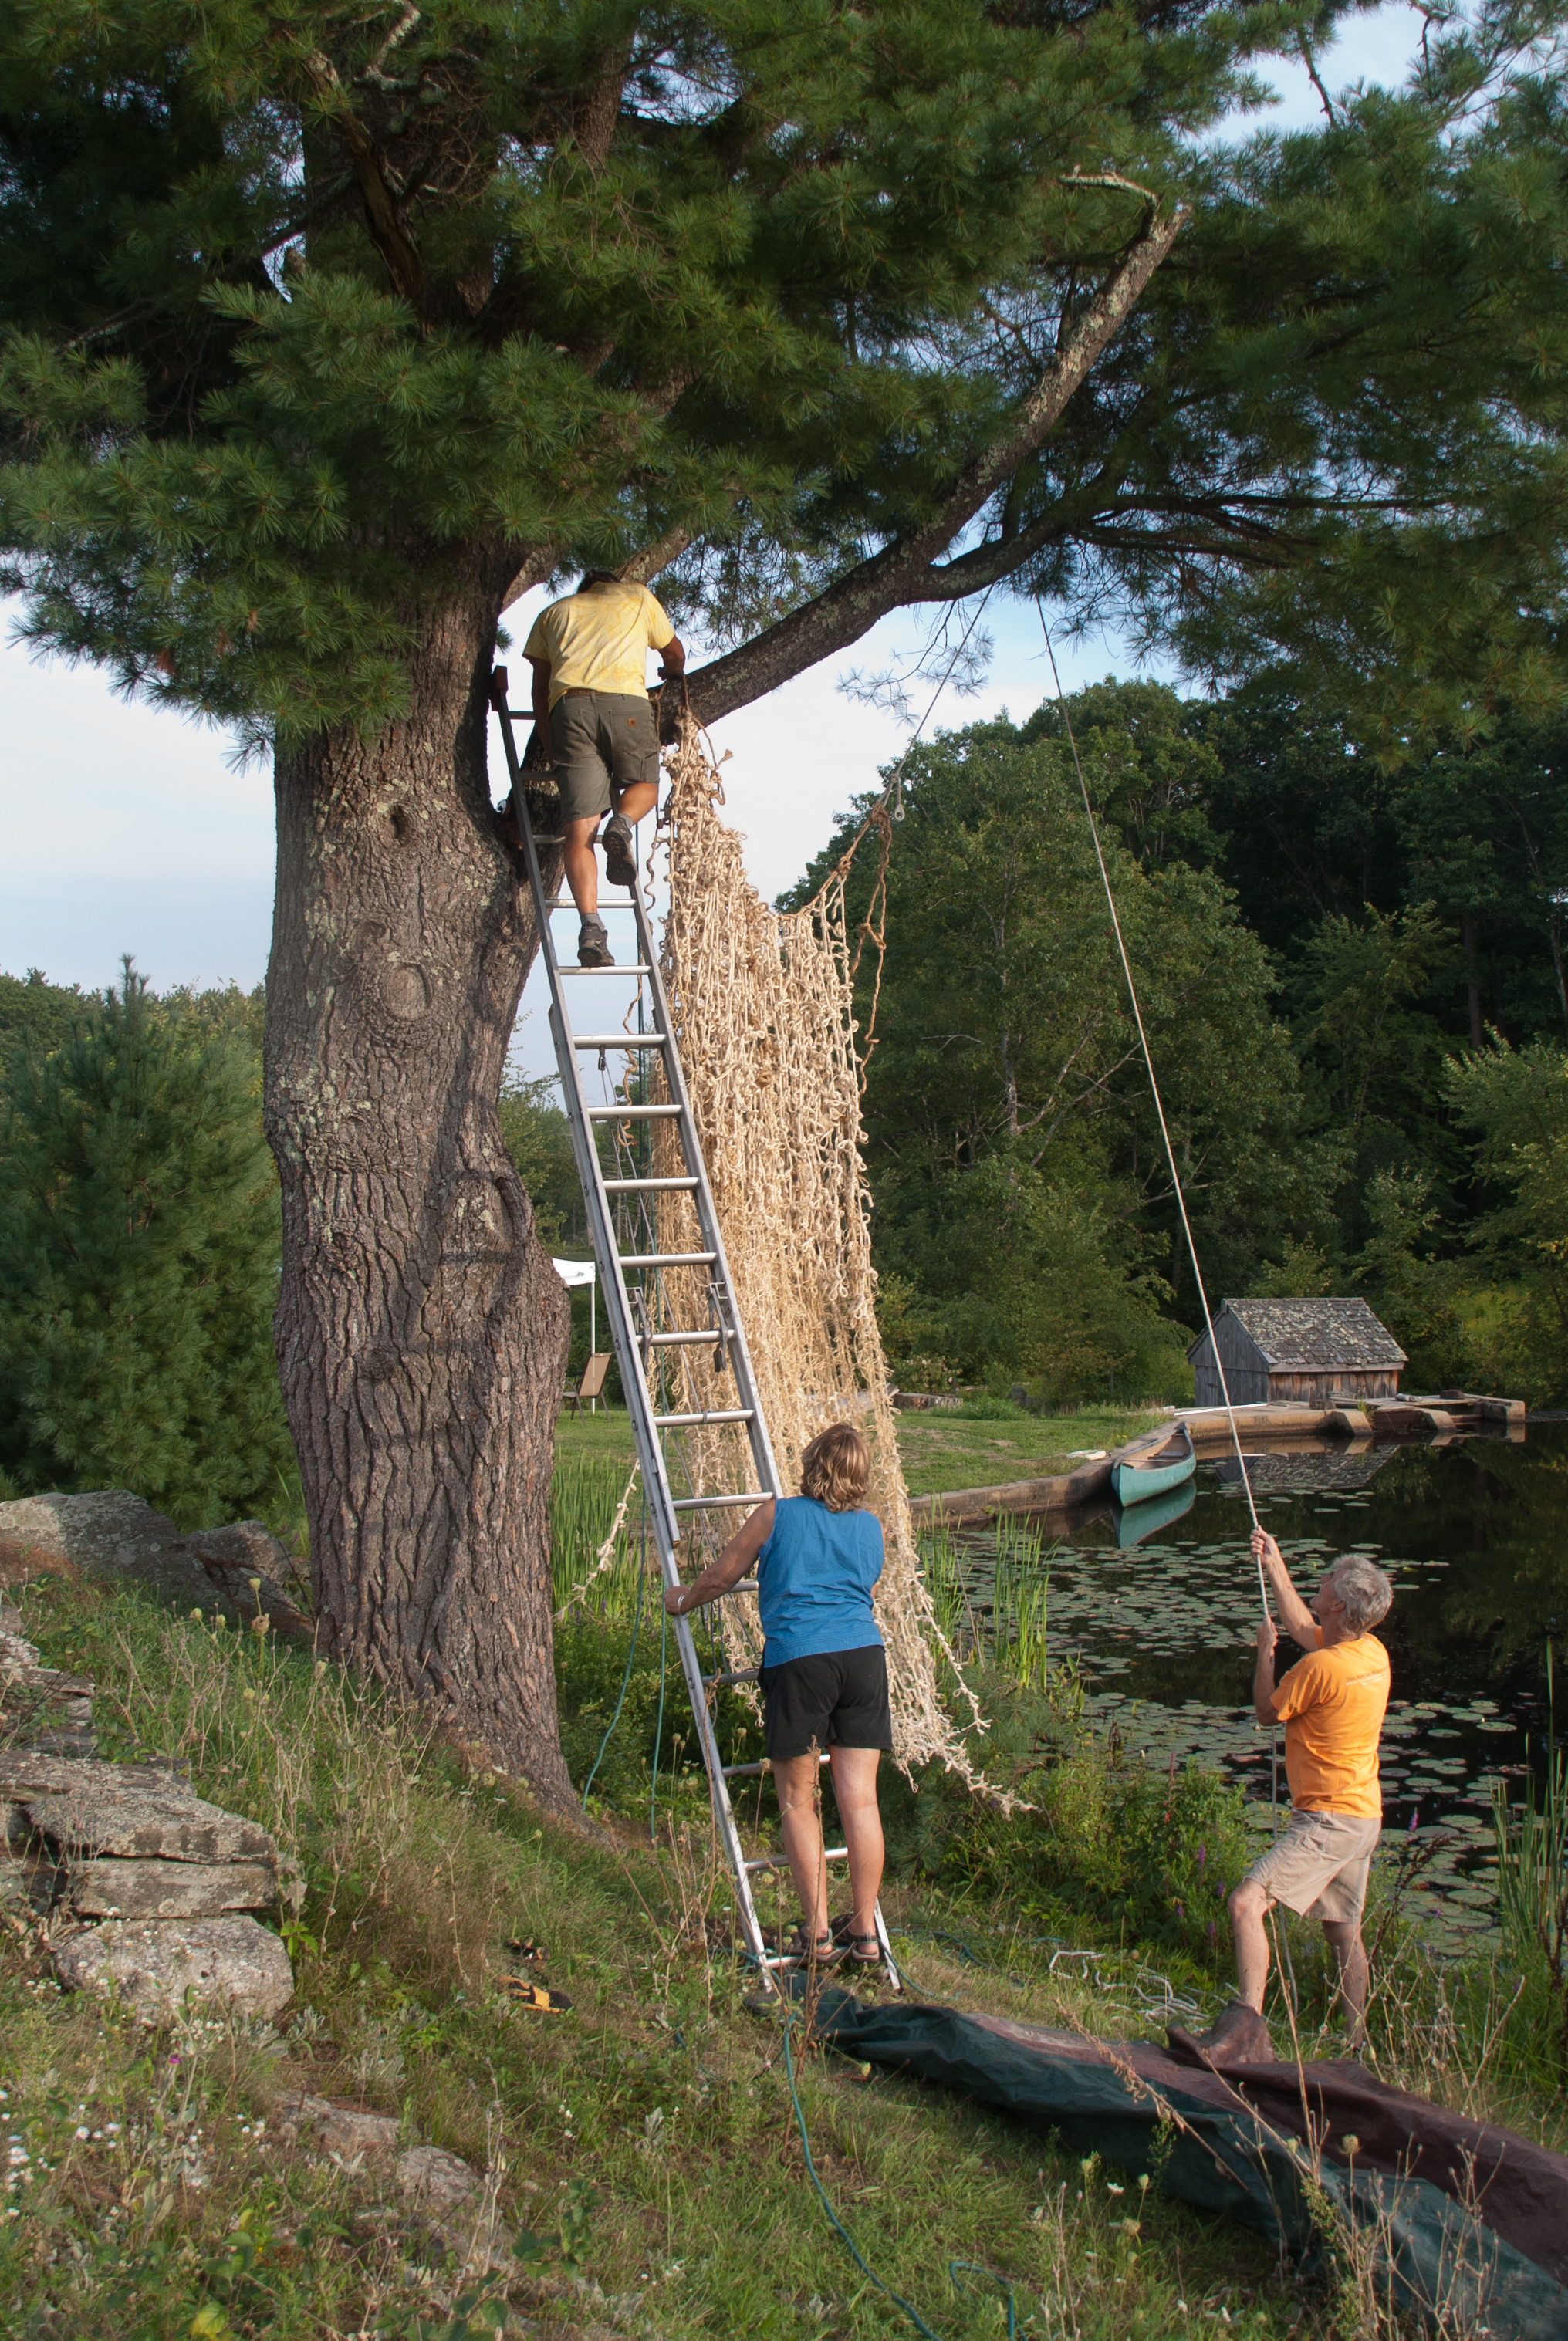 Installing  Source  with Margot, David Crane, & Blase Provitola in the tree.